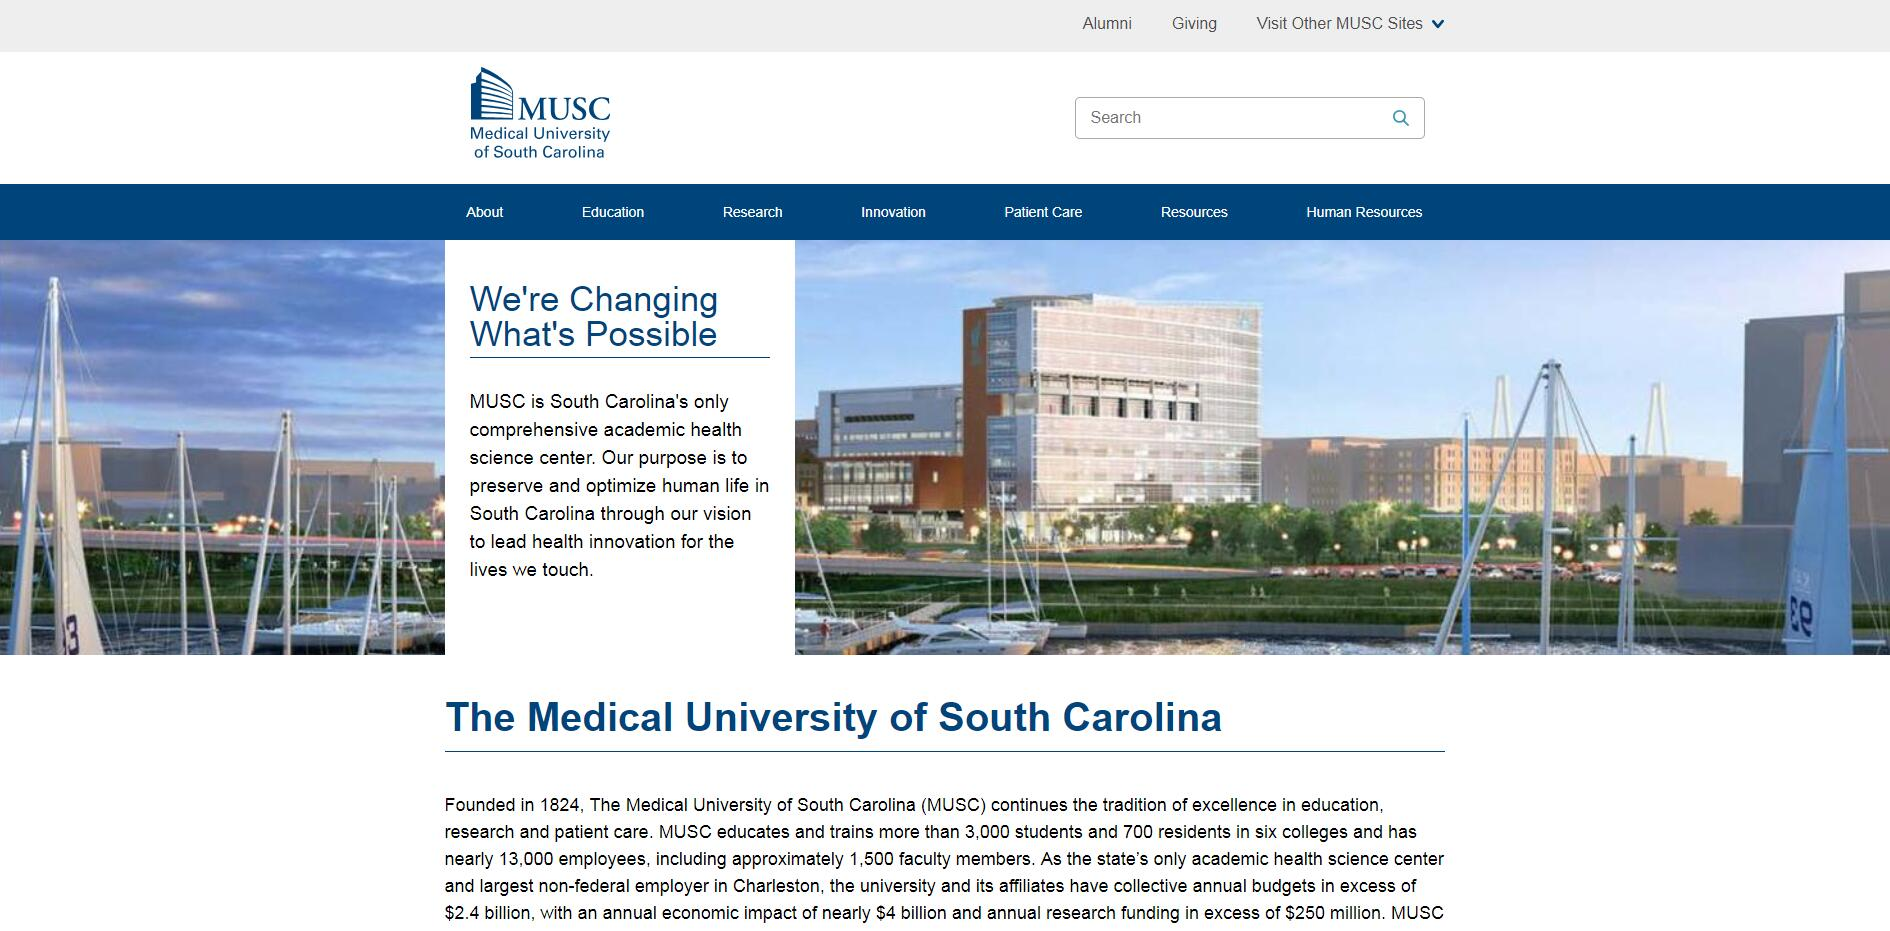 Medical University of South Carolina Admissions Statistics and Rankings